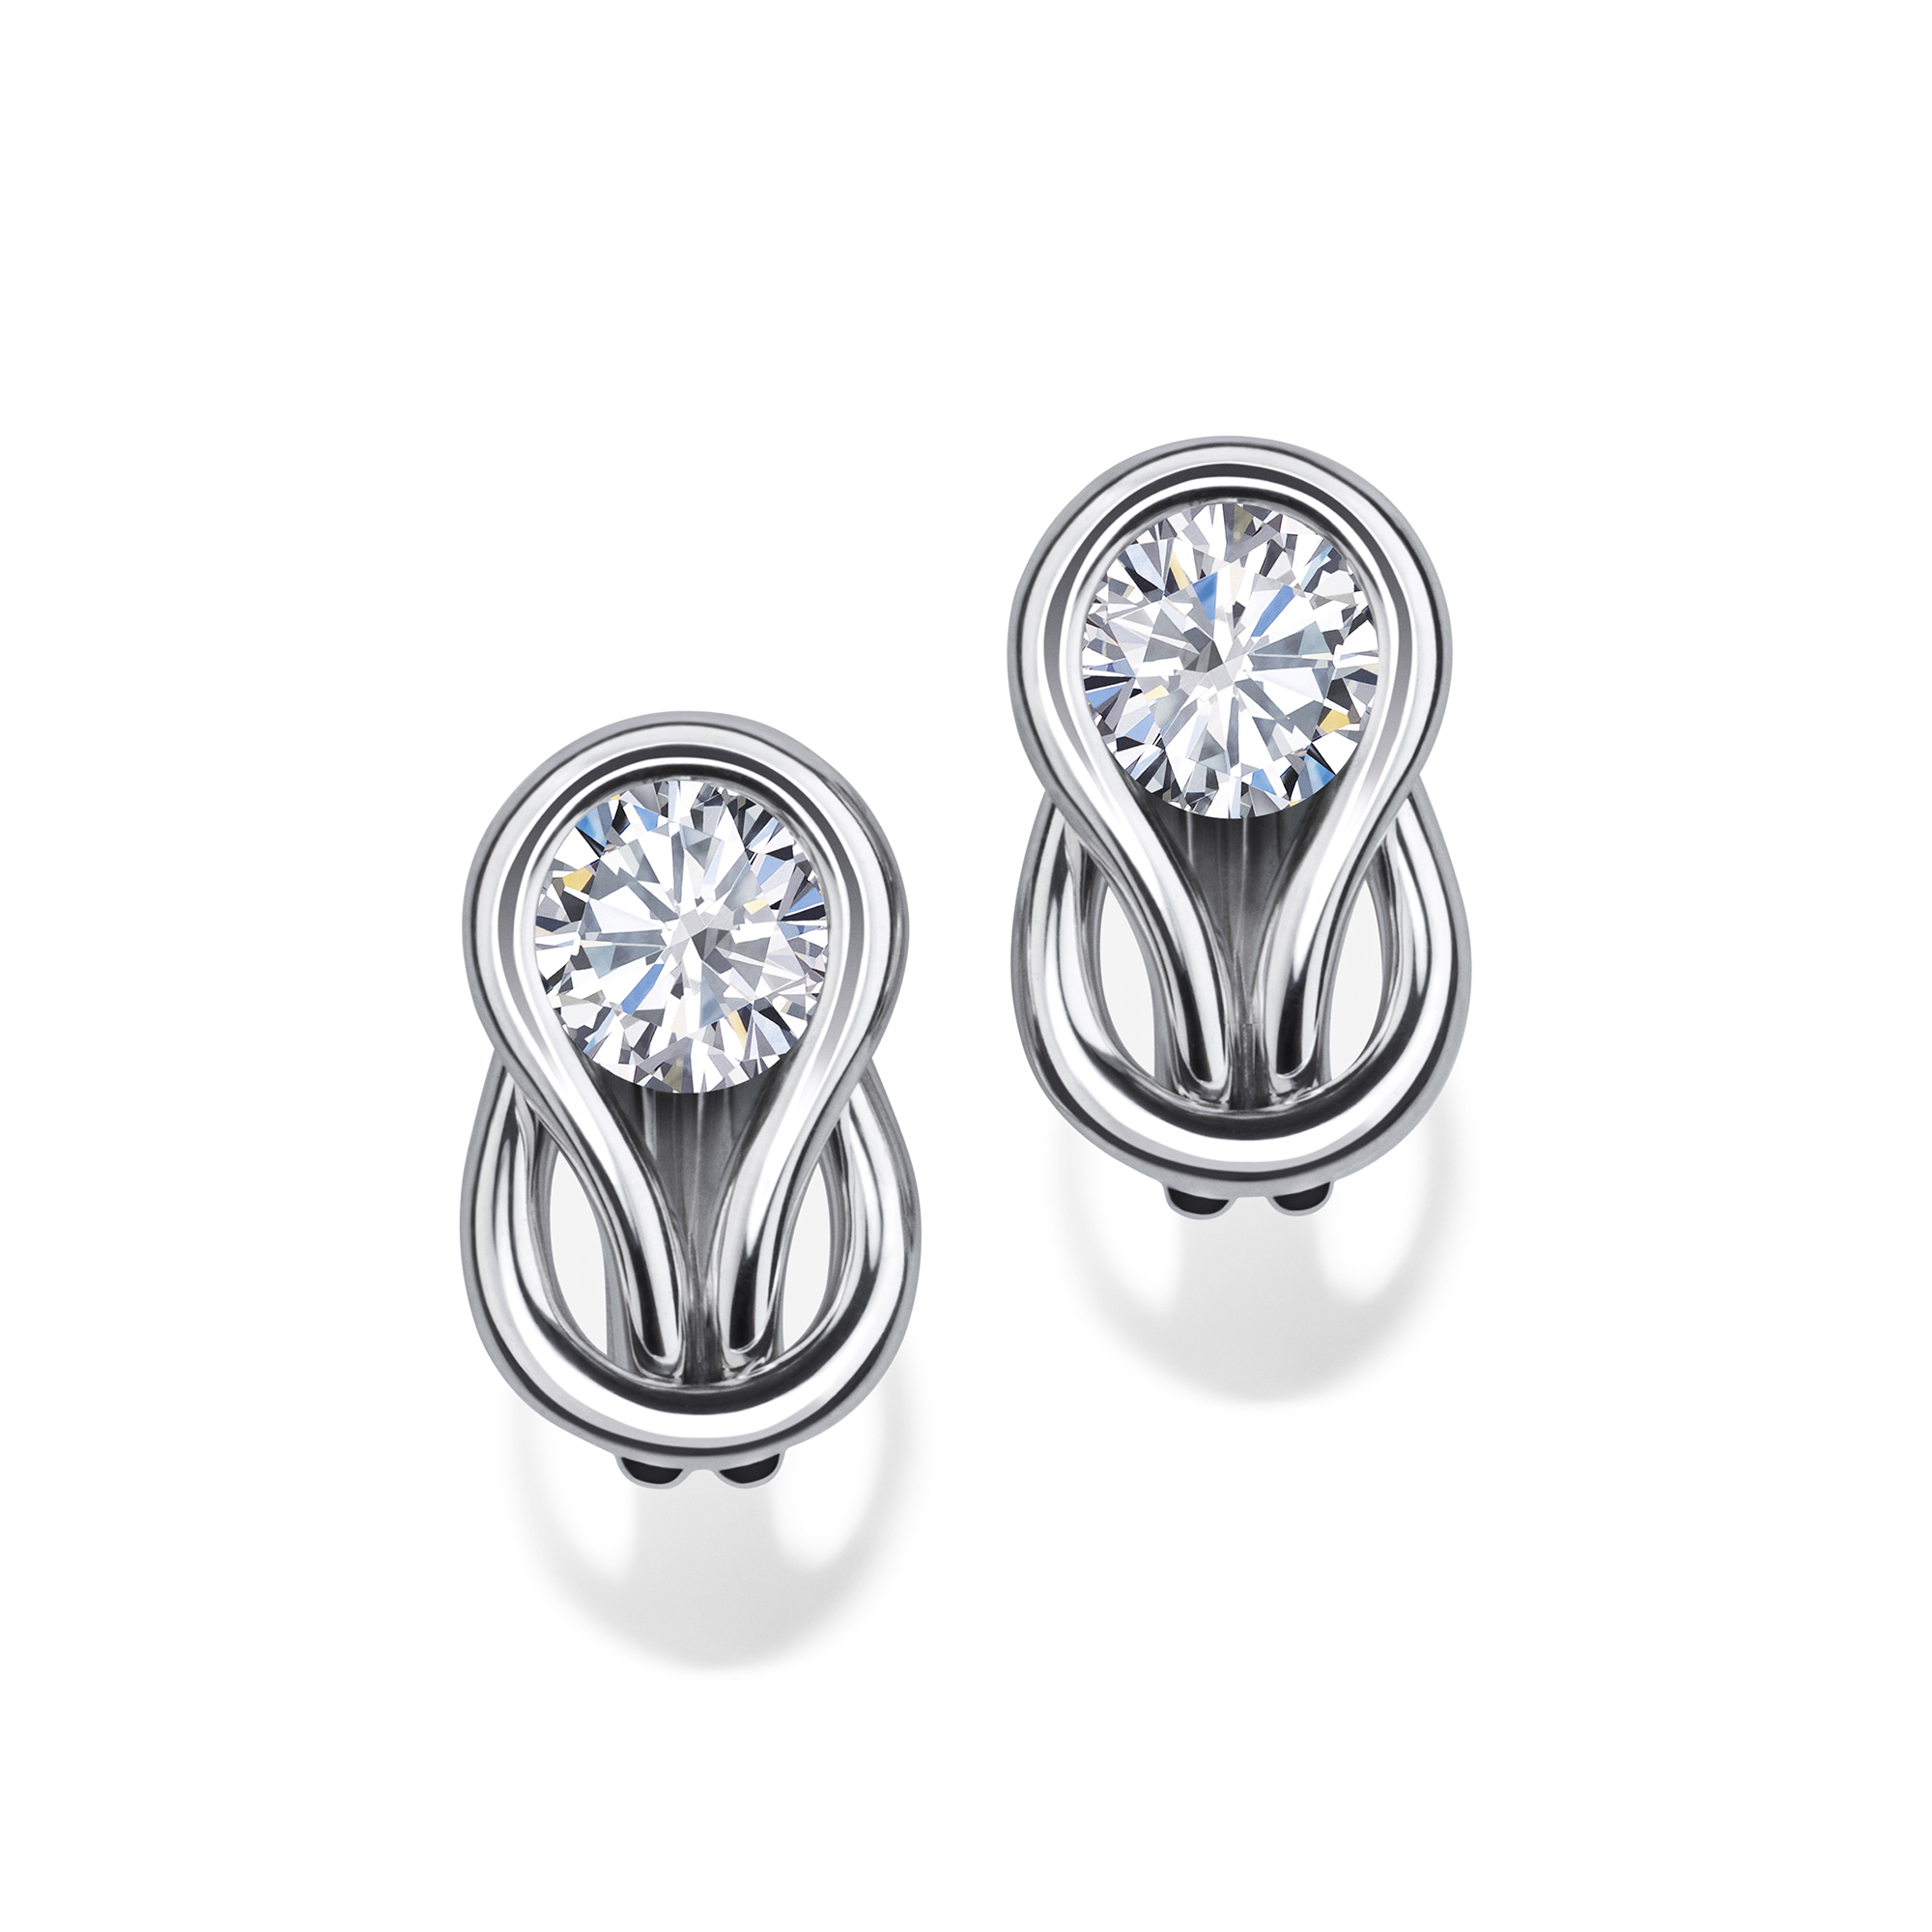 gold robinson m stud earrings pearl diamond white david solitaire